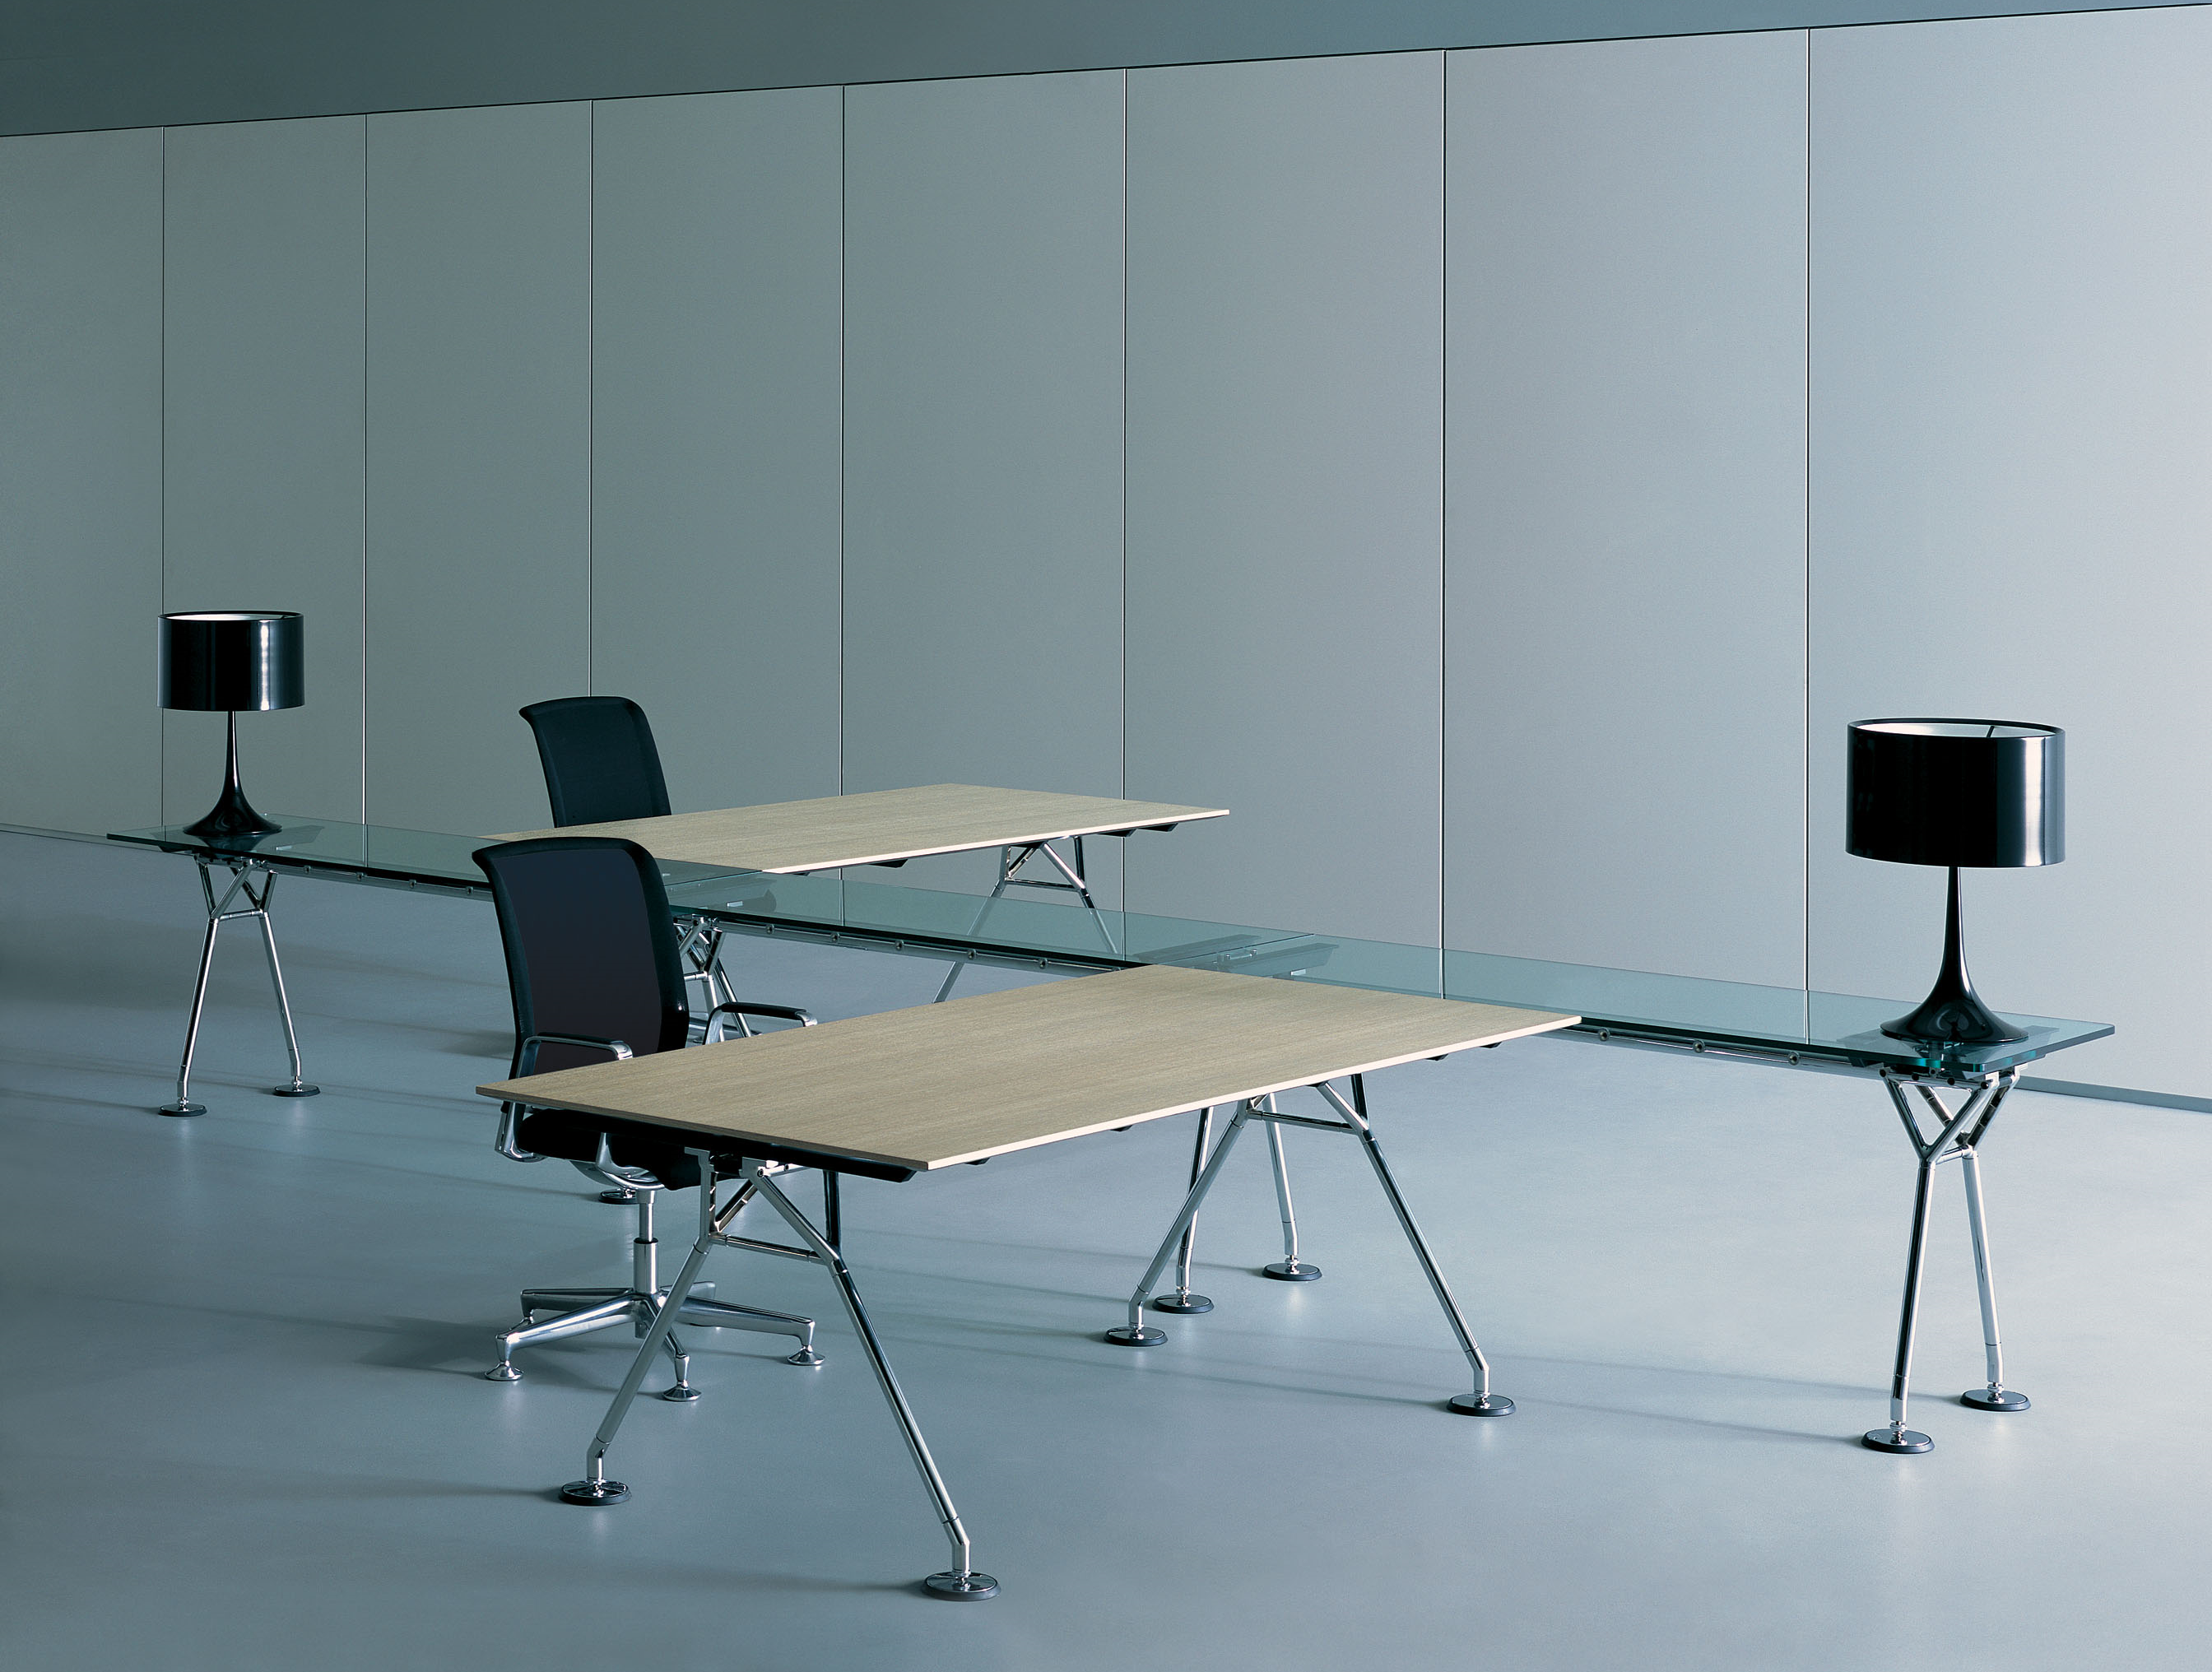 contract furniture open plan nomos bench system by tecno - Herman Miller Tischsysteme